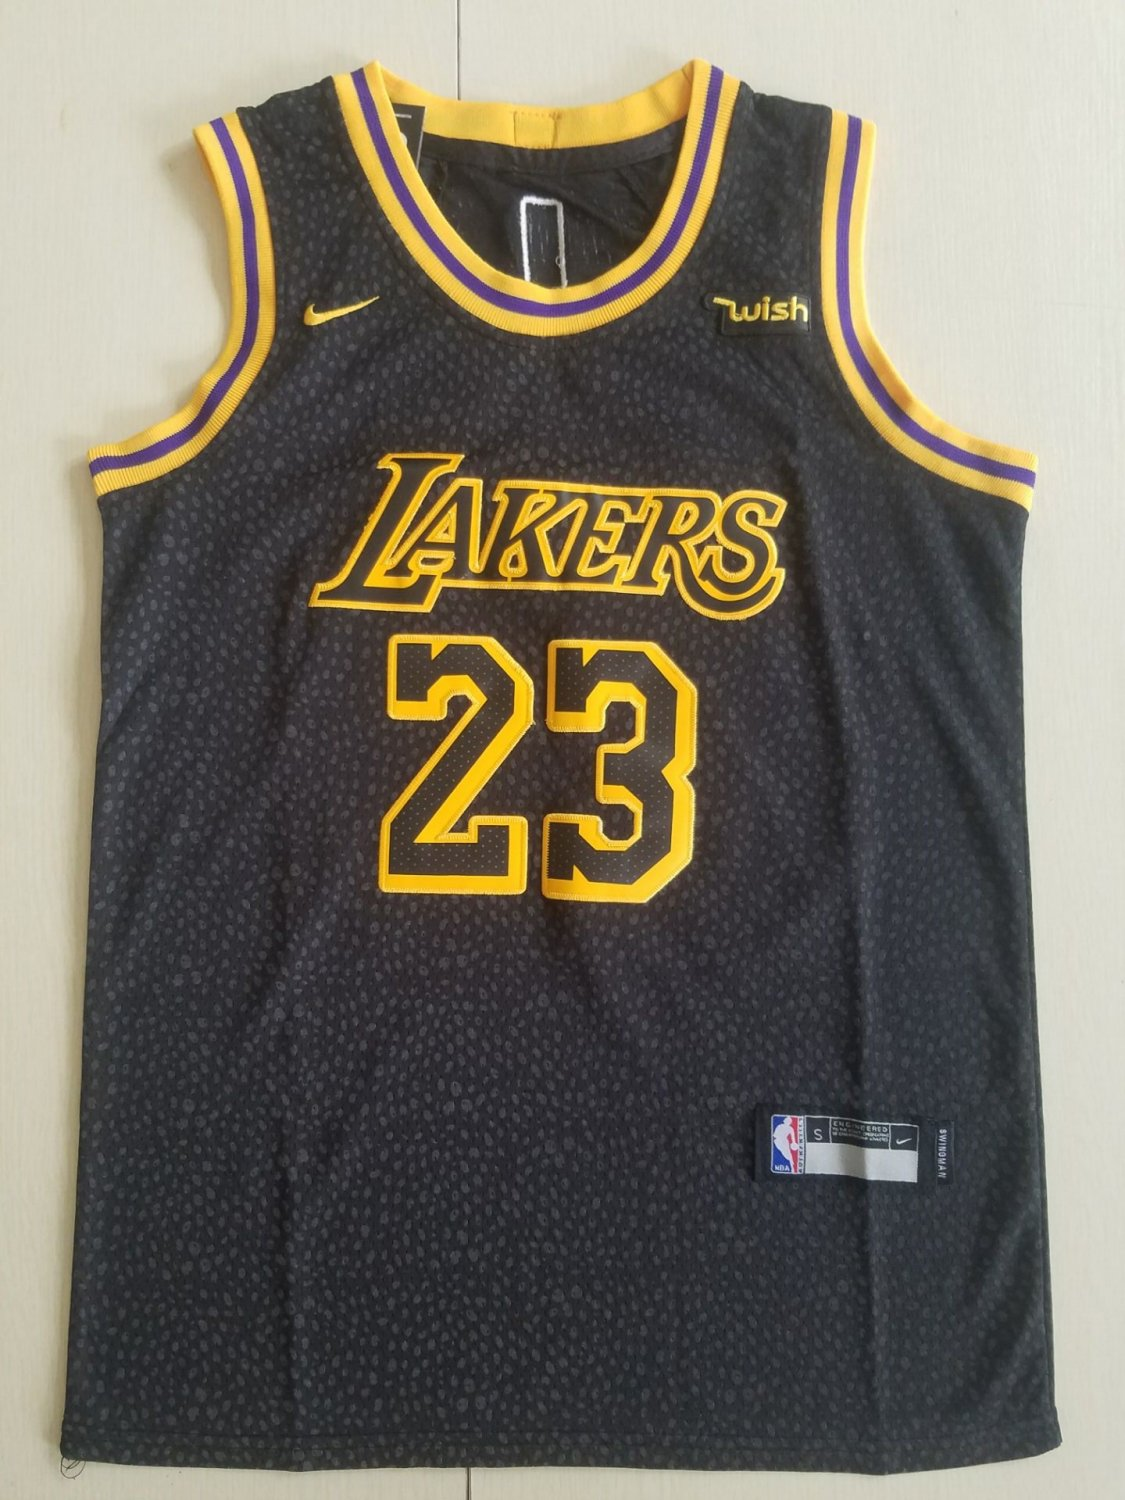 76a990223bf2 Youth boys lebron James lakers jersey black